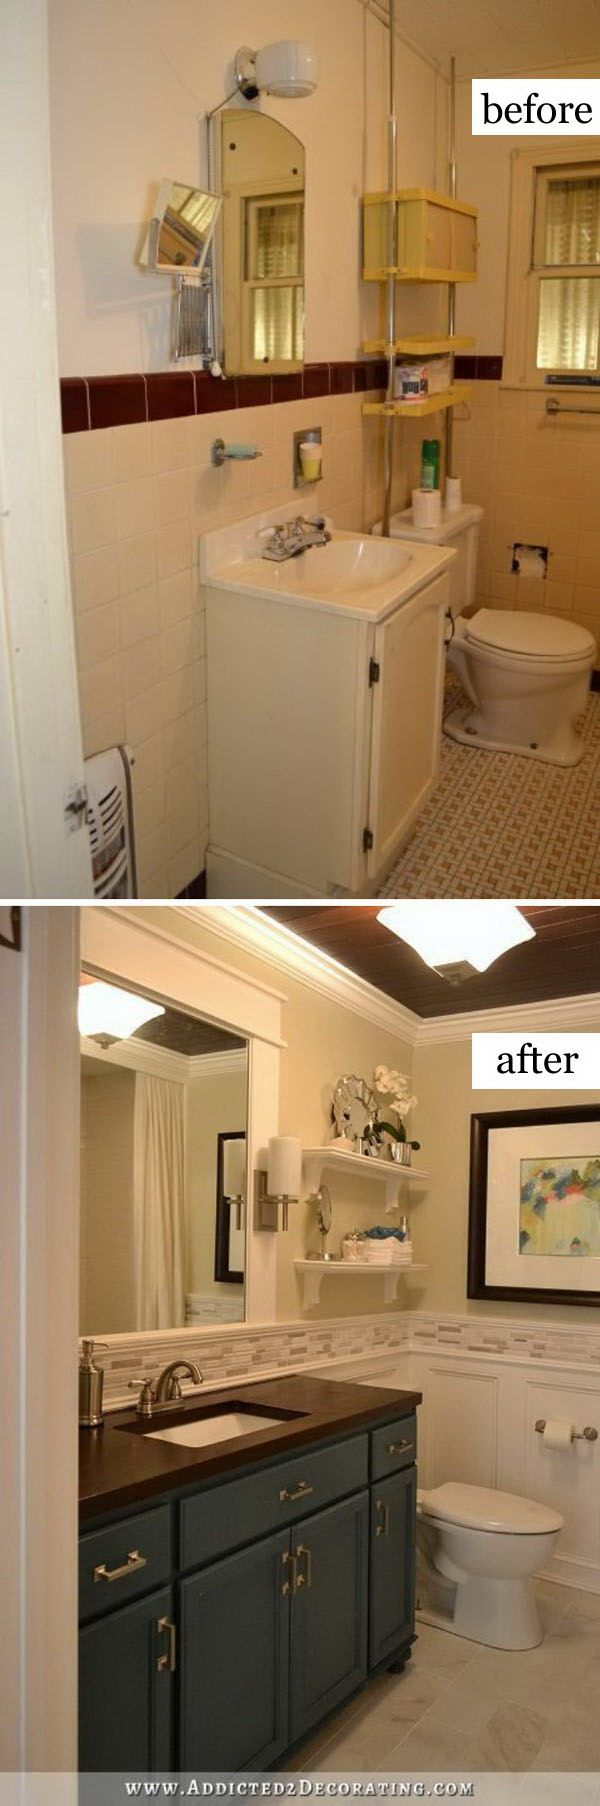 Before And After Makeovers Most Beautiful Bathroom Remodeling - Before and after bathroom updates